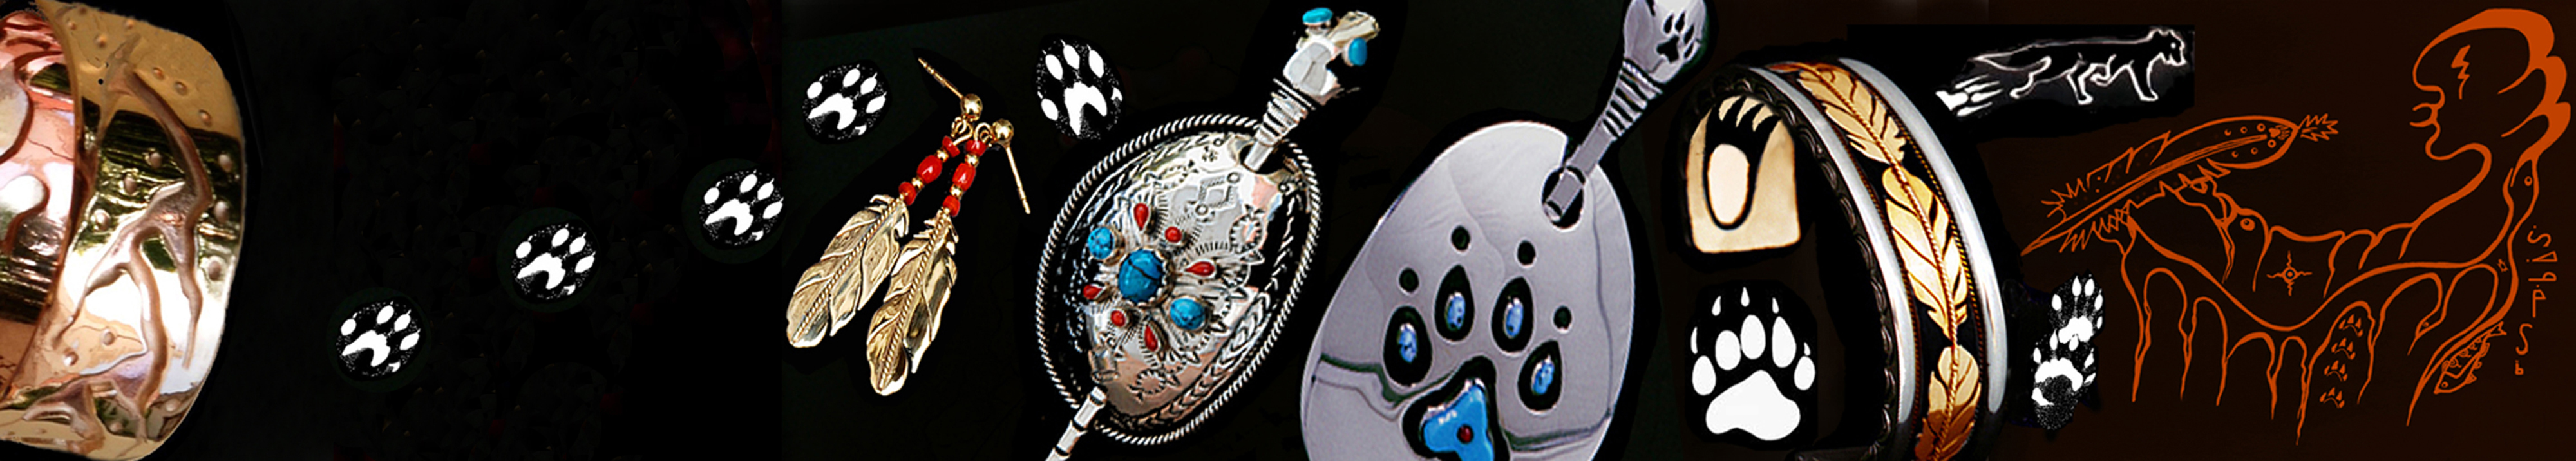 Fisher star Creations doodem clan jewelry image